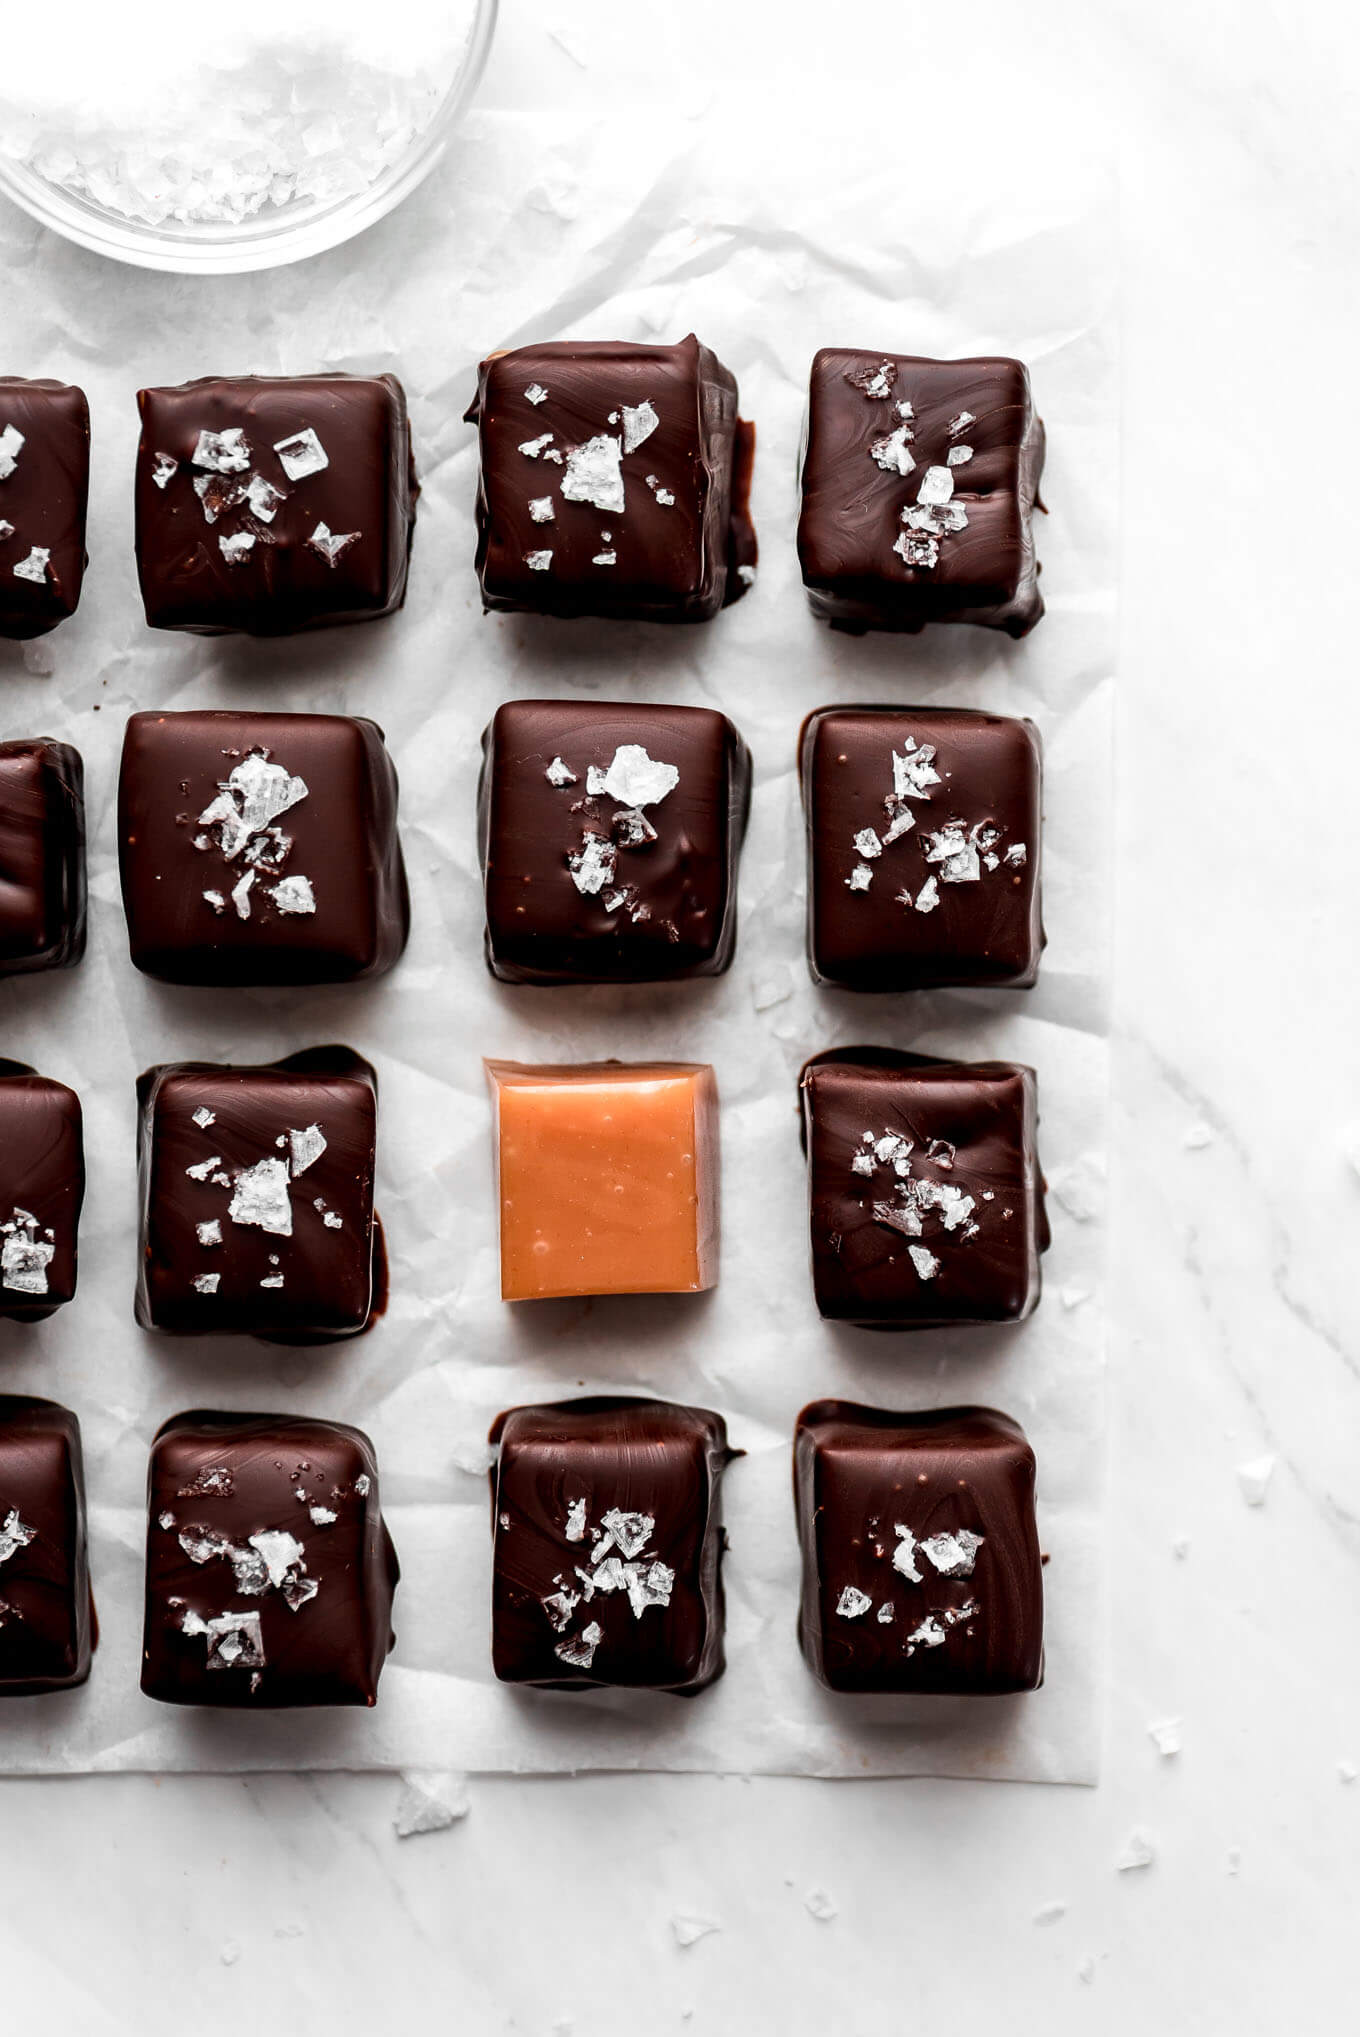 One square of caramel among lots of chocolate coated caramels.